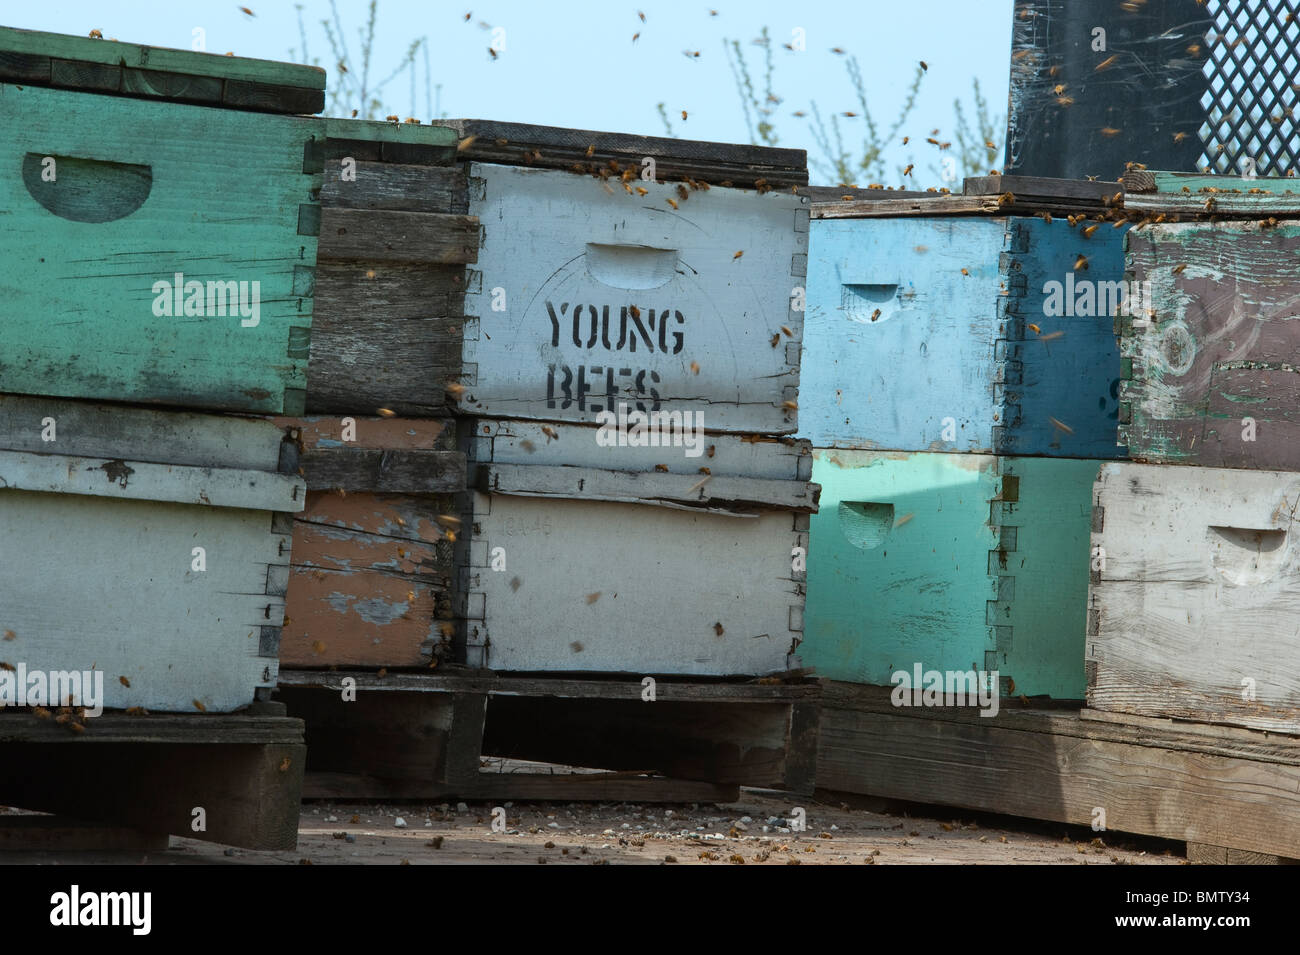 Bee hives on flat bed truck parked on road near cherry orchard in spring, pollinating the blossoms. - Stock Image